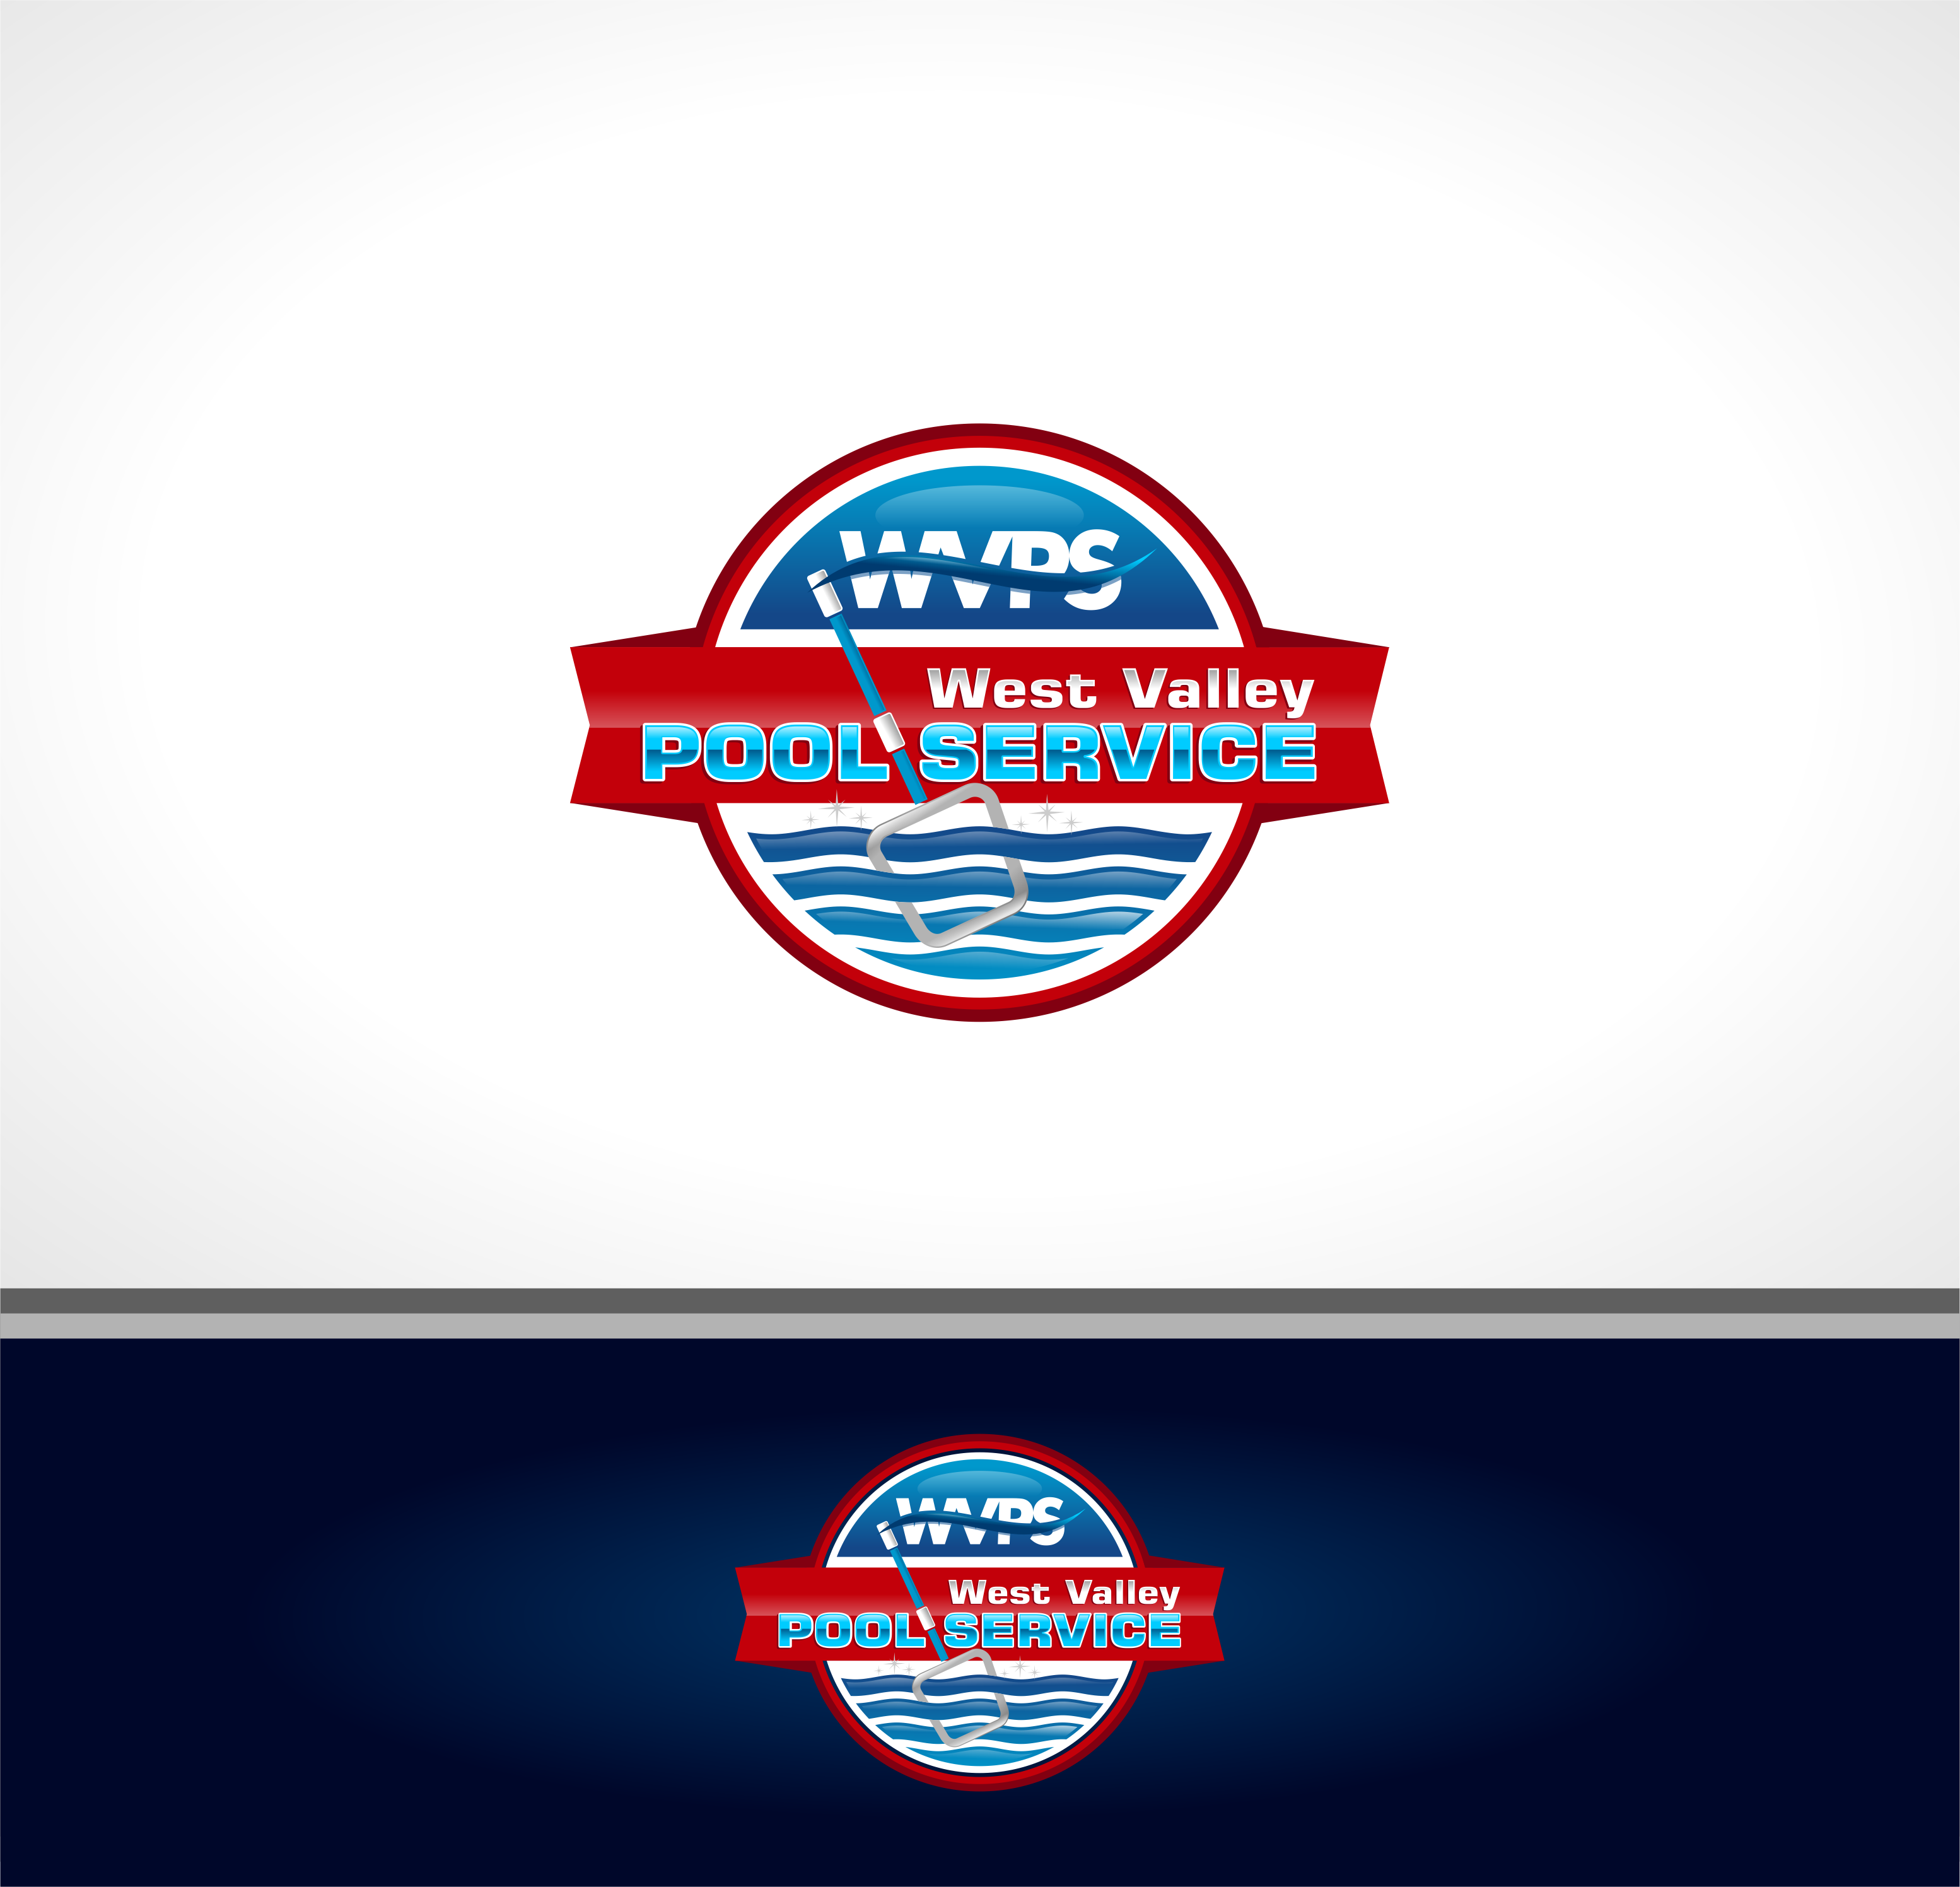 Logo Design by Raymond Garcia - Entry No. 99 in the Logo Design Contest Clever Logo Design for West Valley Pool Service.